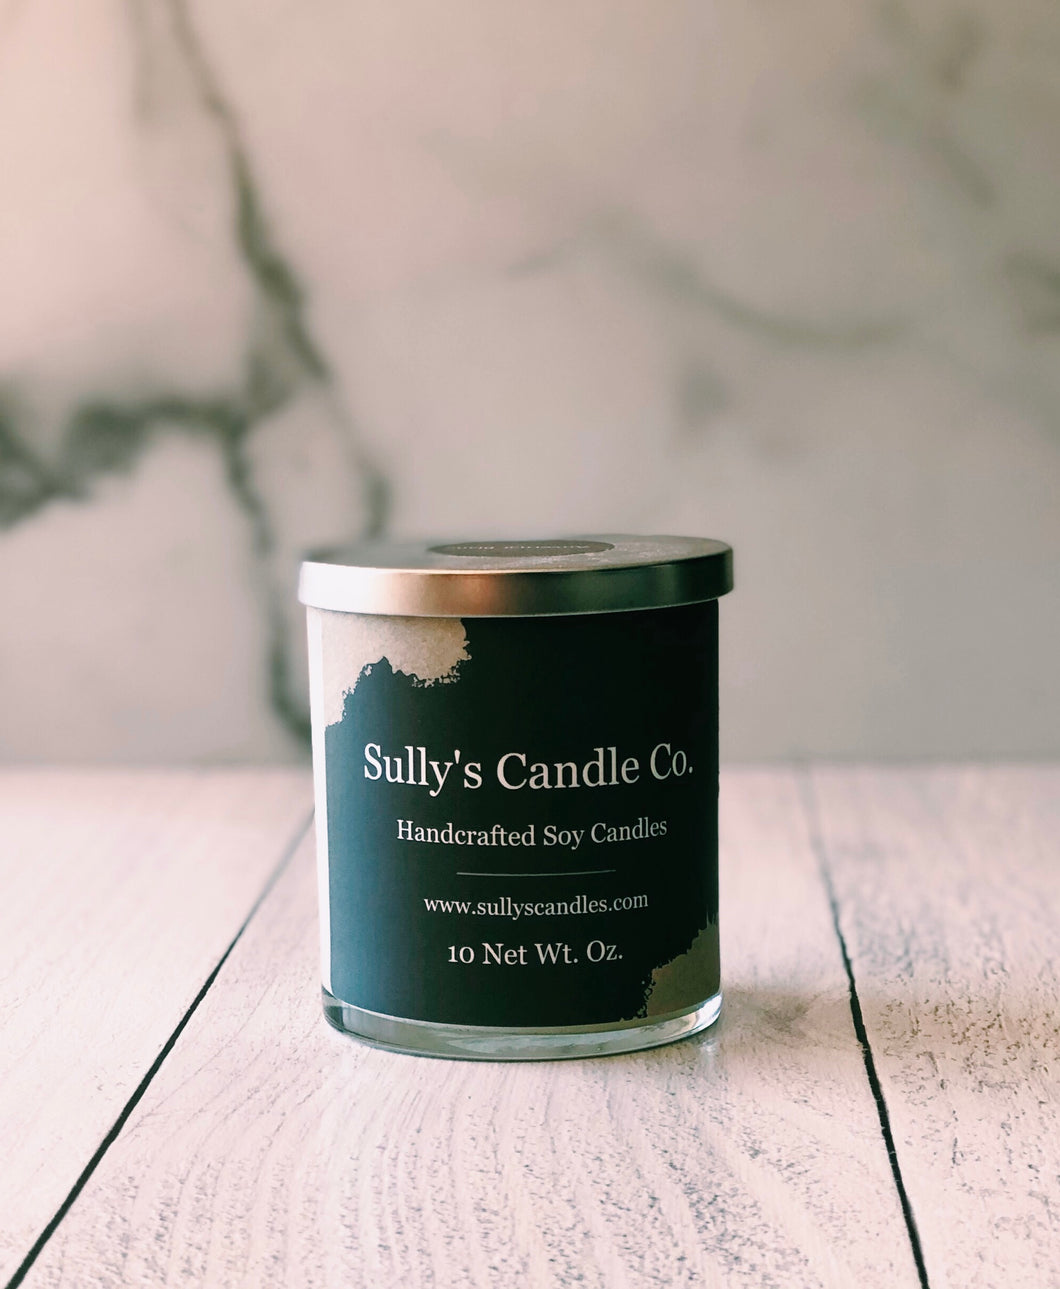 Lemon Pound Cake - Sully's Candle Co.